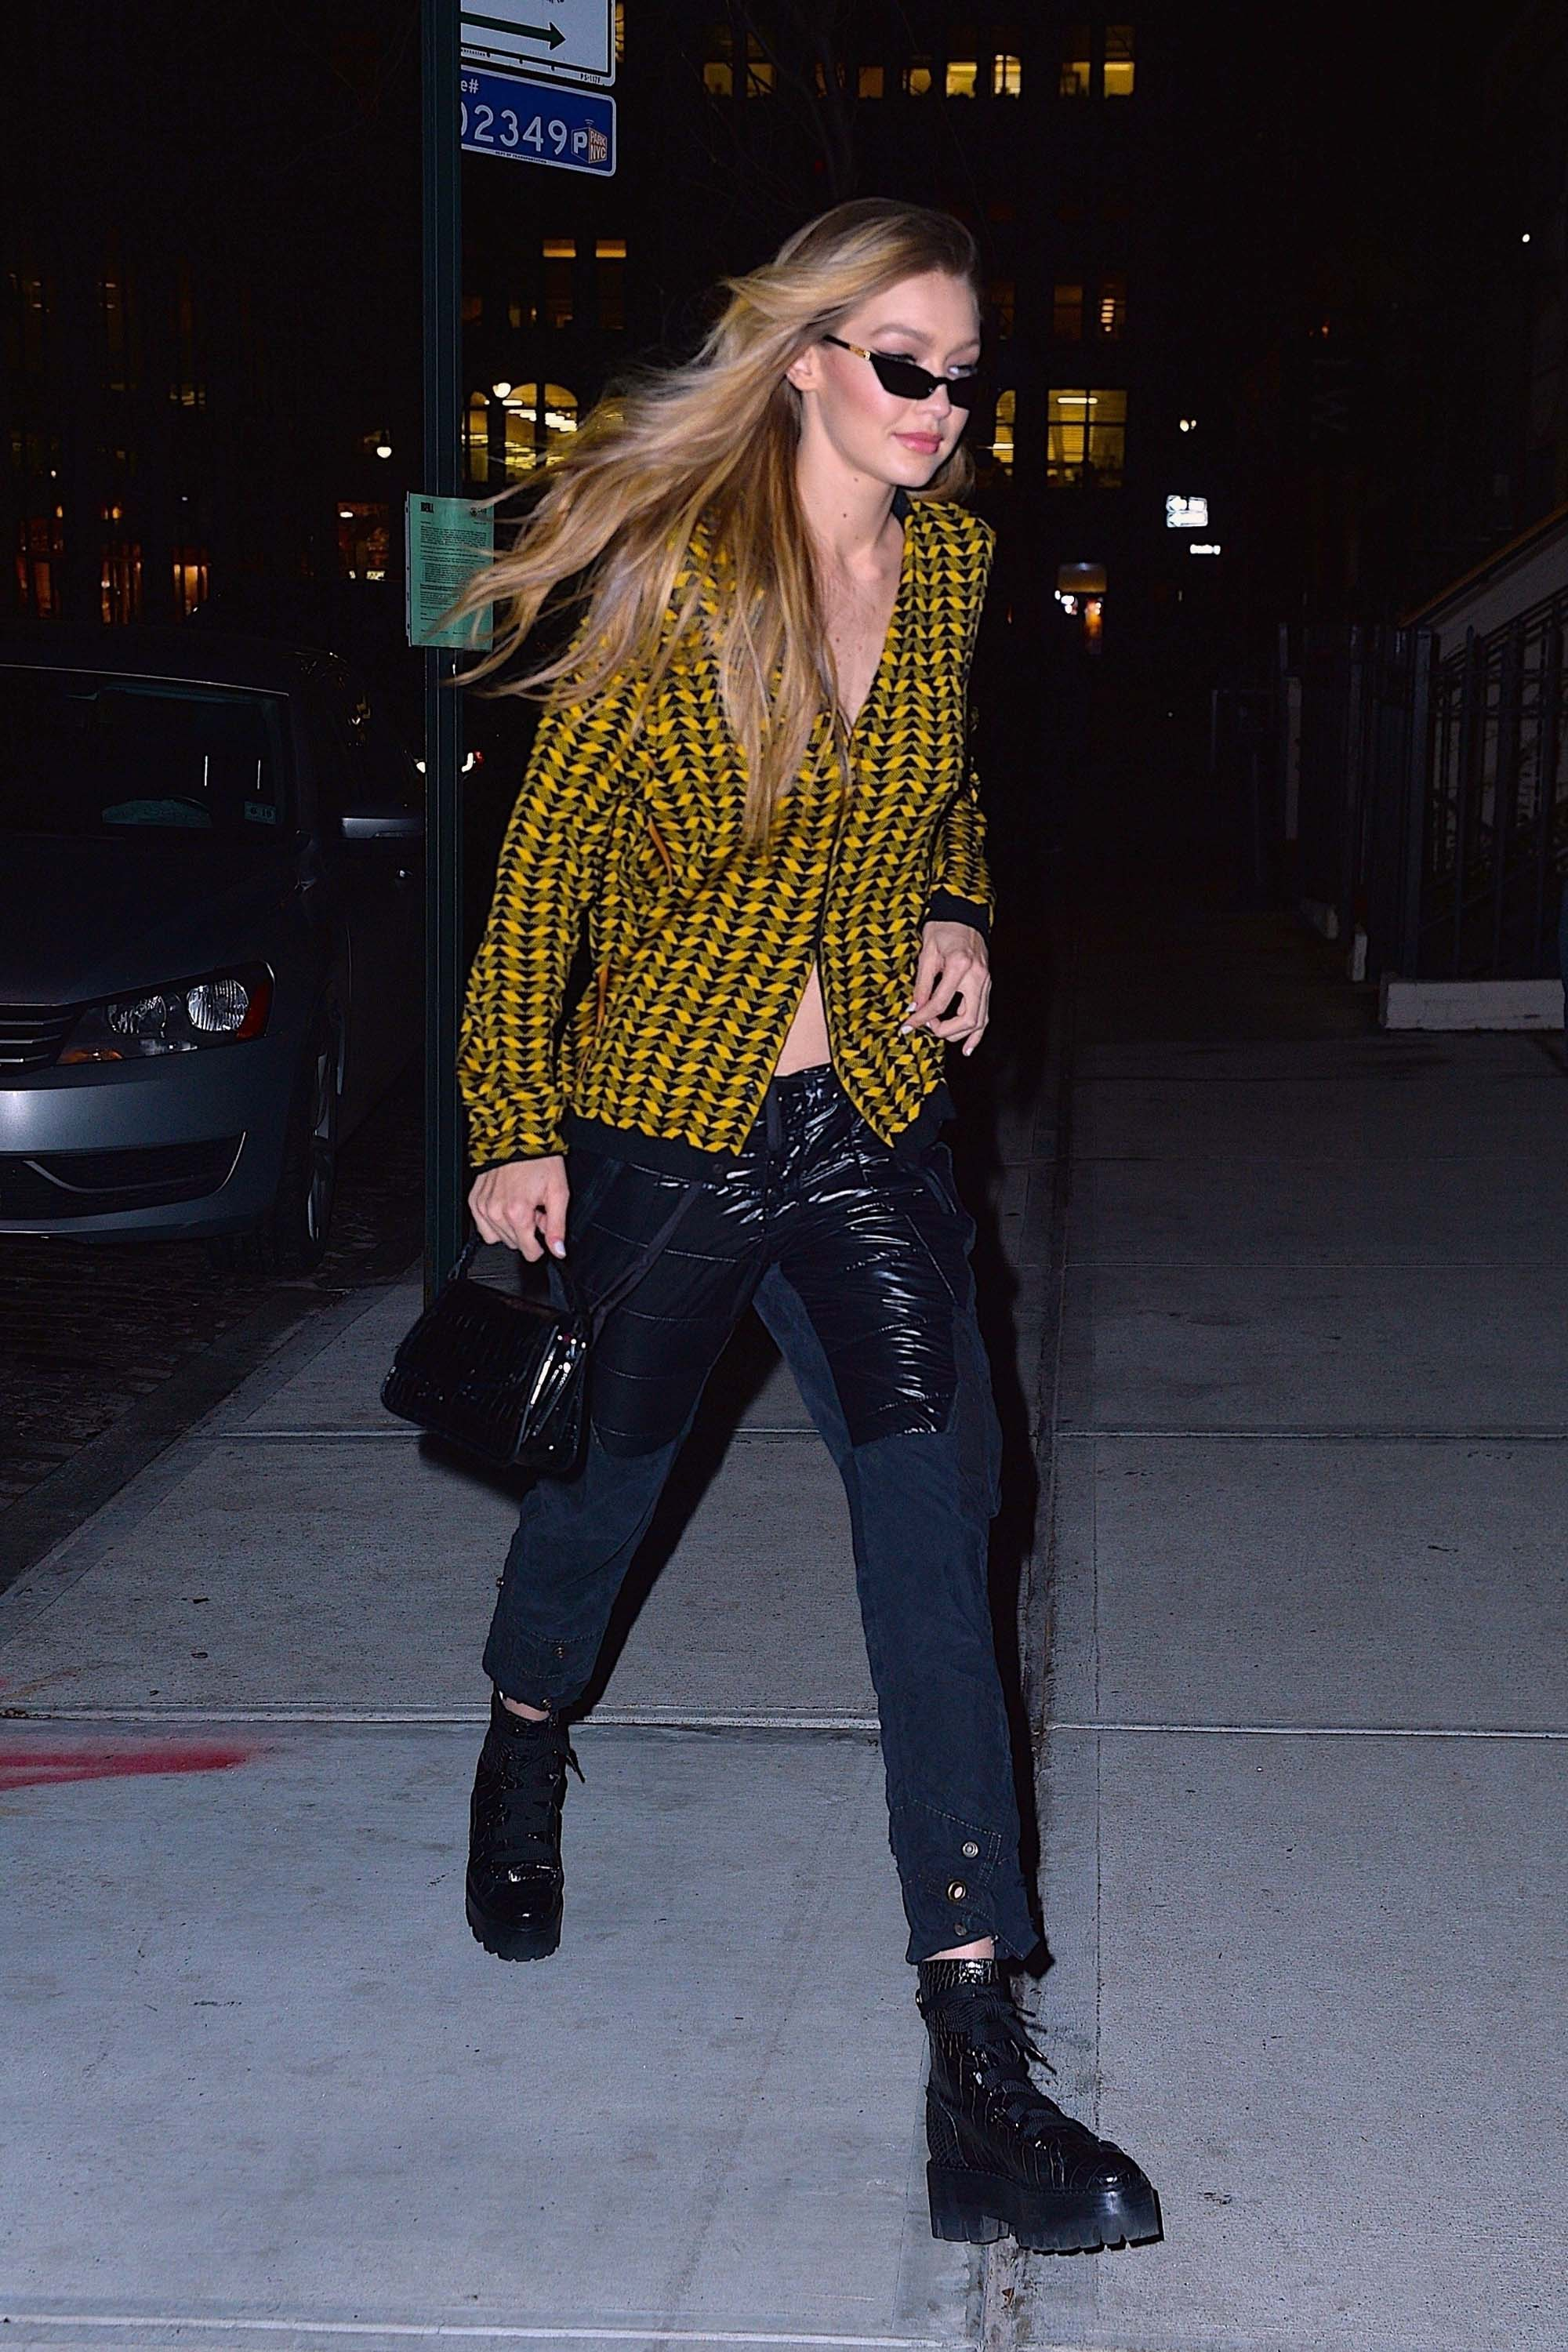 Gigi Hadid at her apartment in NYC